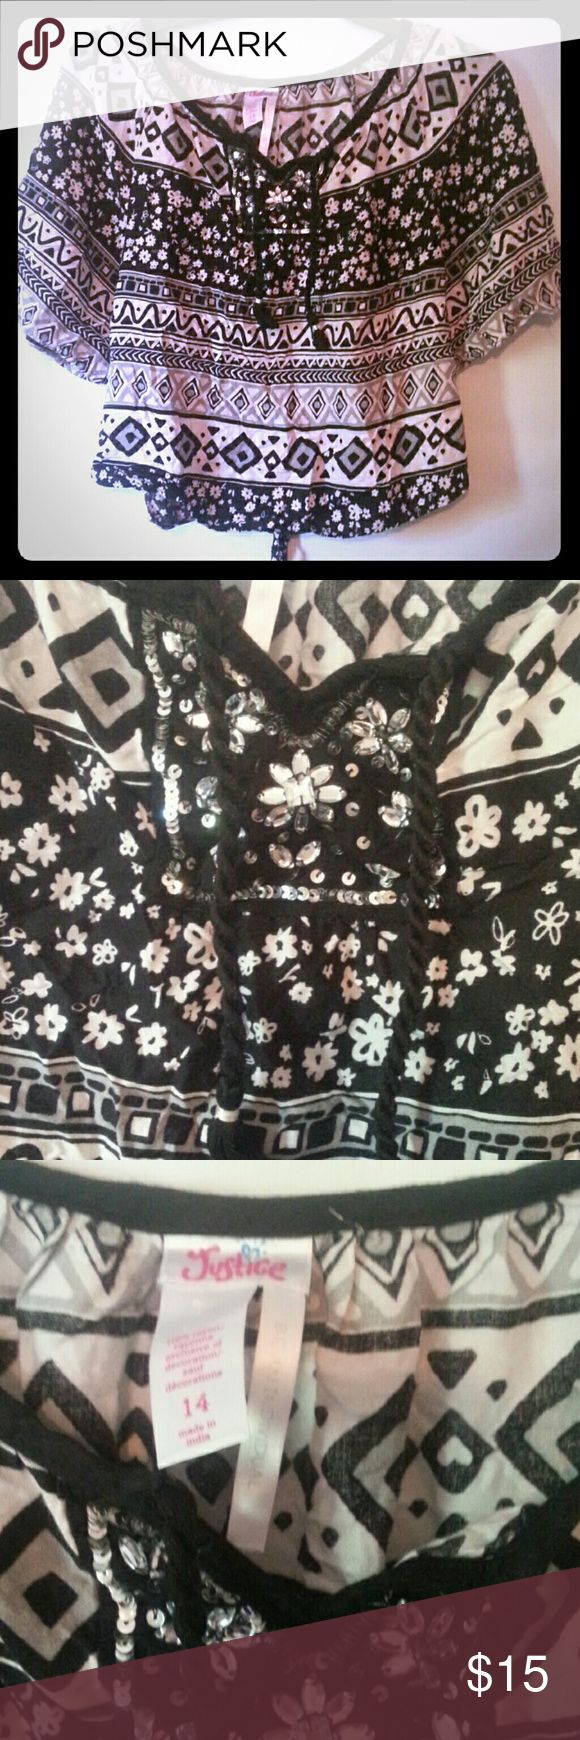 Justice shirt Black and white jeweled shirt . Bought at justice .  Worn very little ties in back.no stains or holes Justice   Shirts & Tops